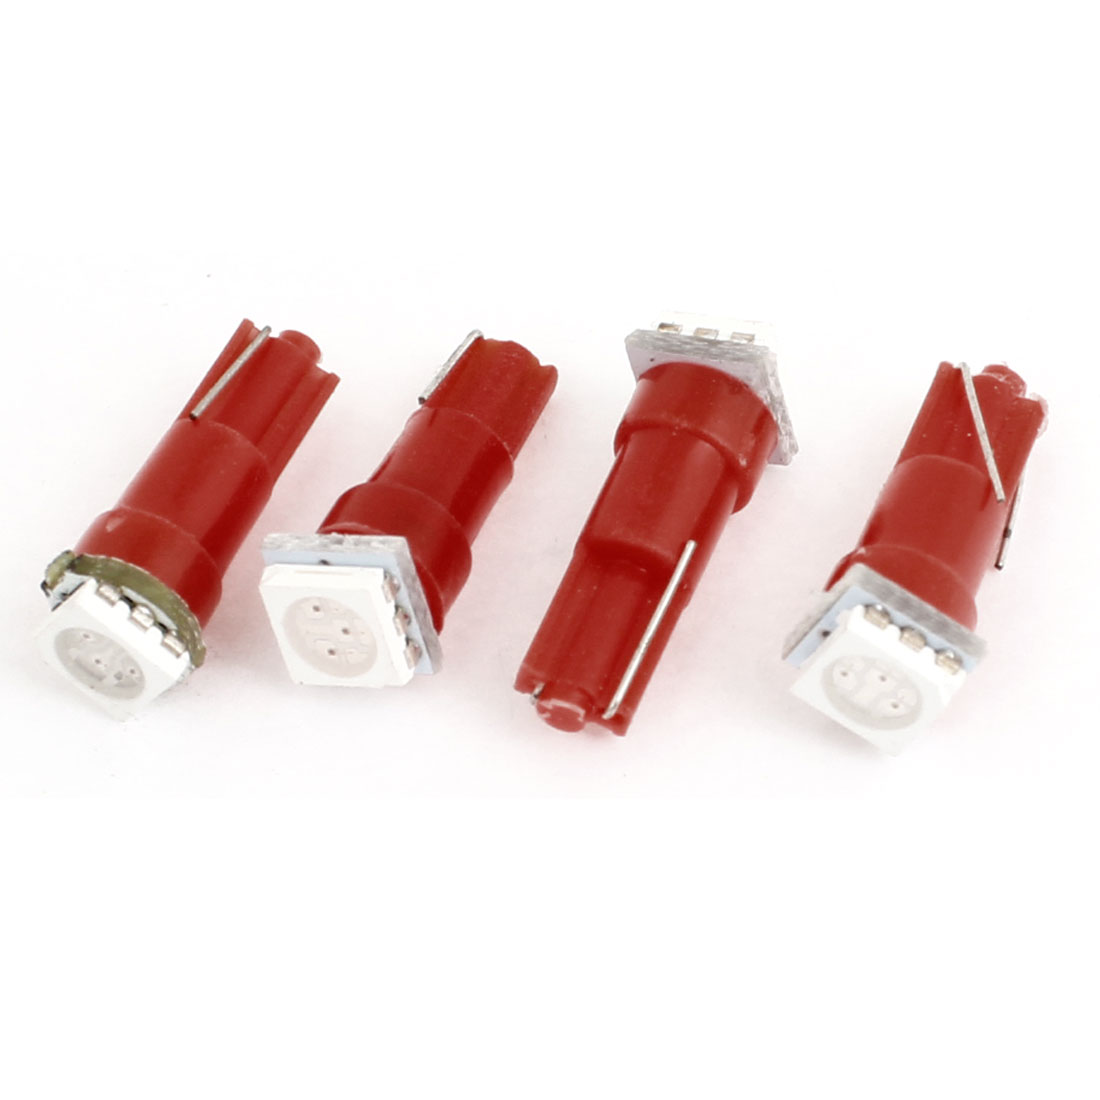 T10 Red 5050 SMD LED Dashboard Fascia Board Light Bulb 4pcs for Car